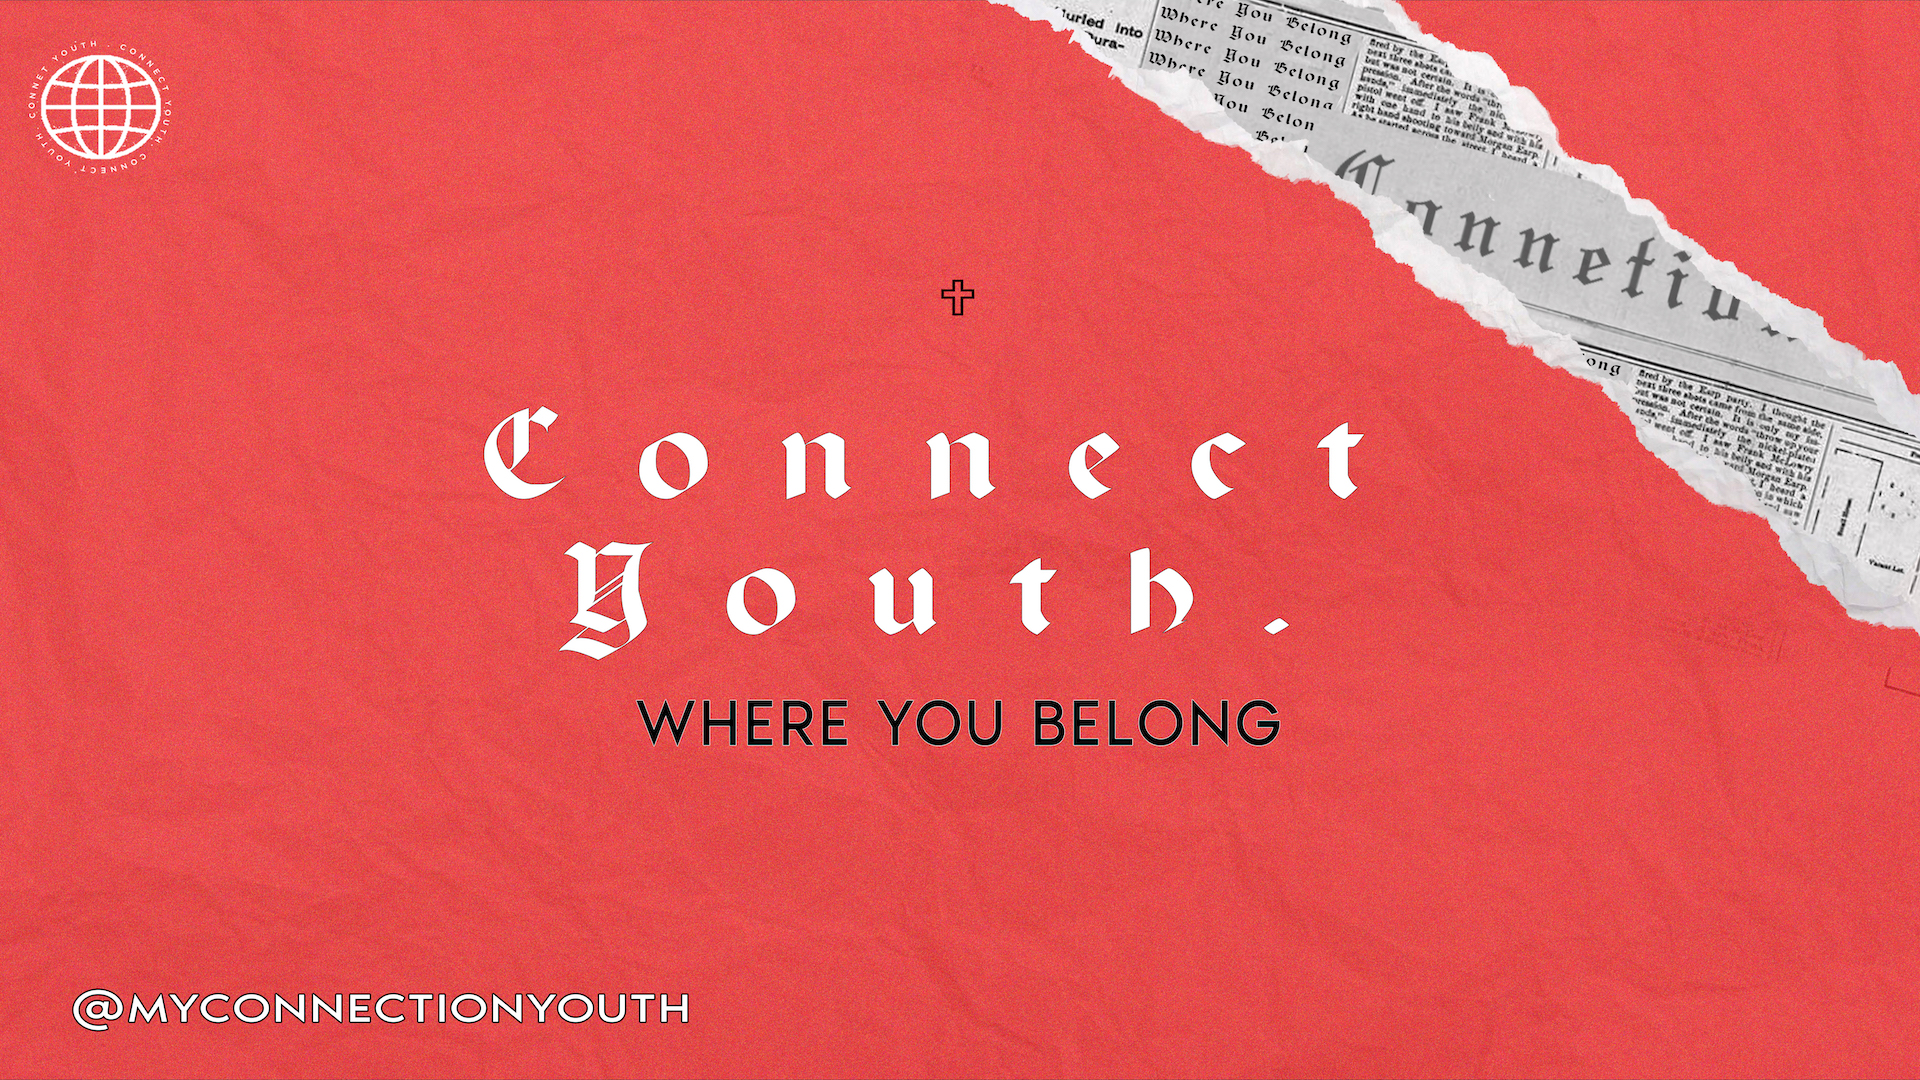 ConnectionsYouth